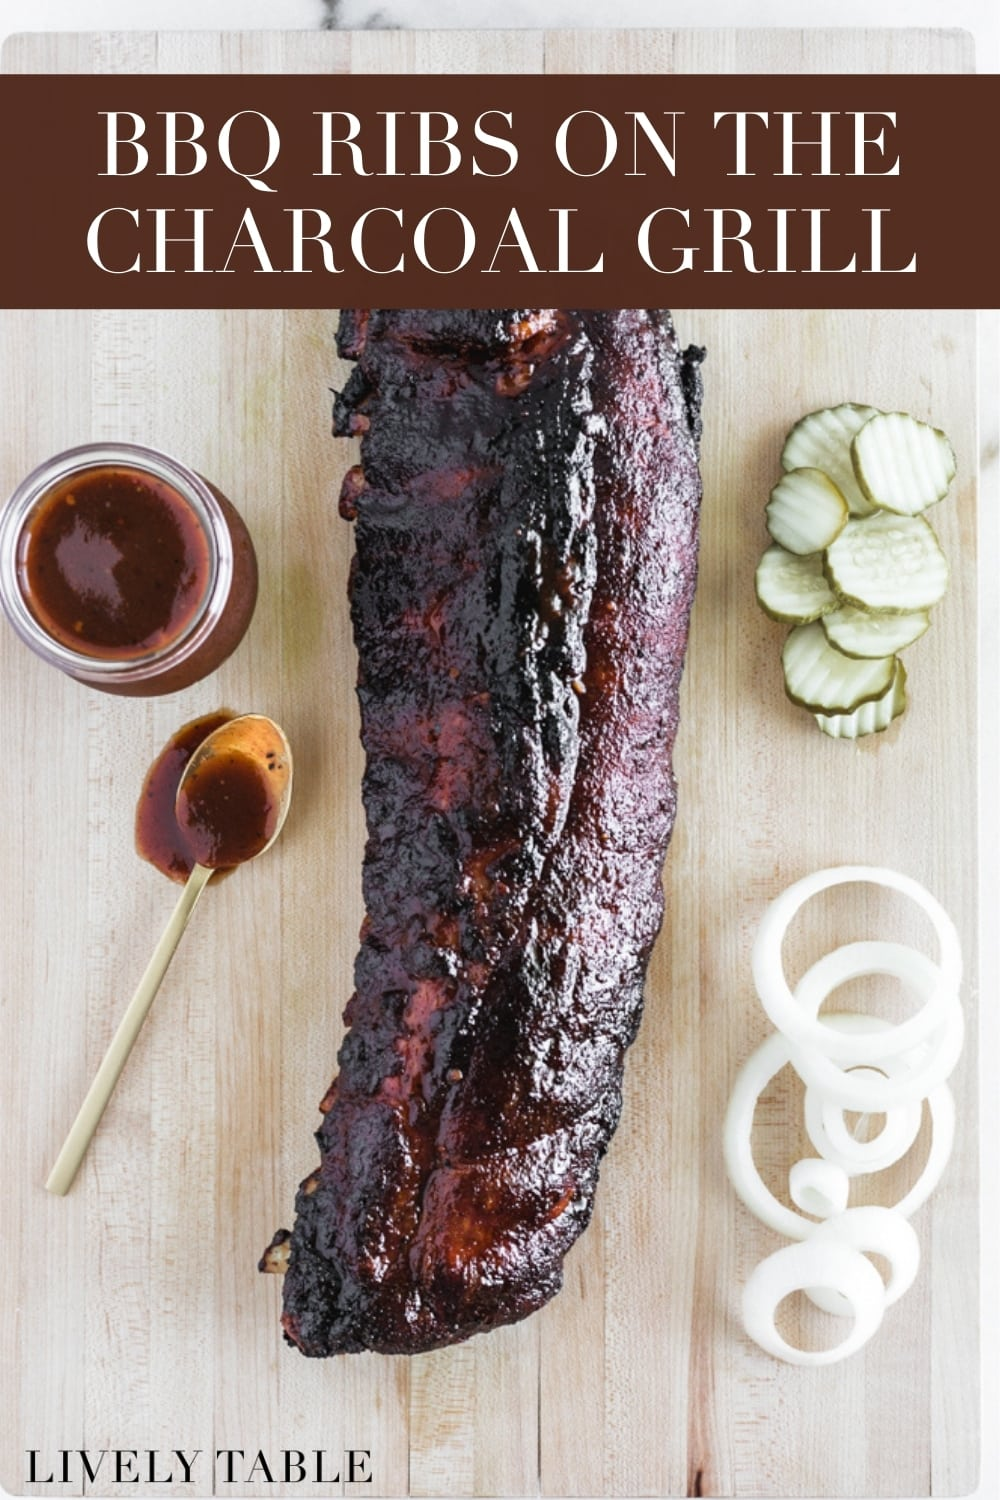 Nothing says summer like grilled BBQ ribs! These baby back ribs on the charcoal grill are simple, delicious, and sure to please a crowd! (#glutenfree, #dairyfree, #nutfree) #ribs #bbq #barbecue #texasbbq #babybackribs #summer #grilling #recipes